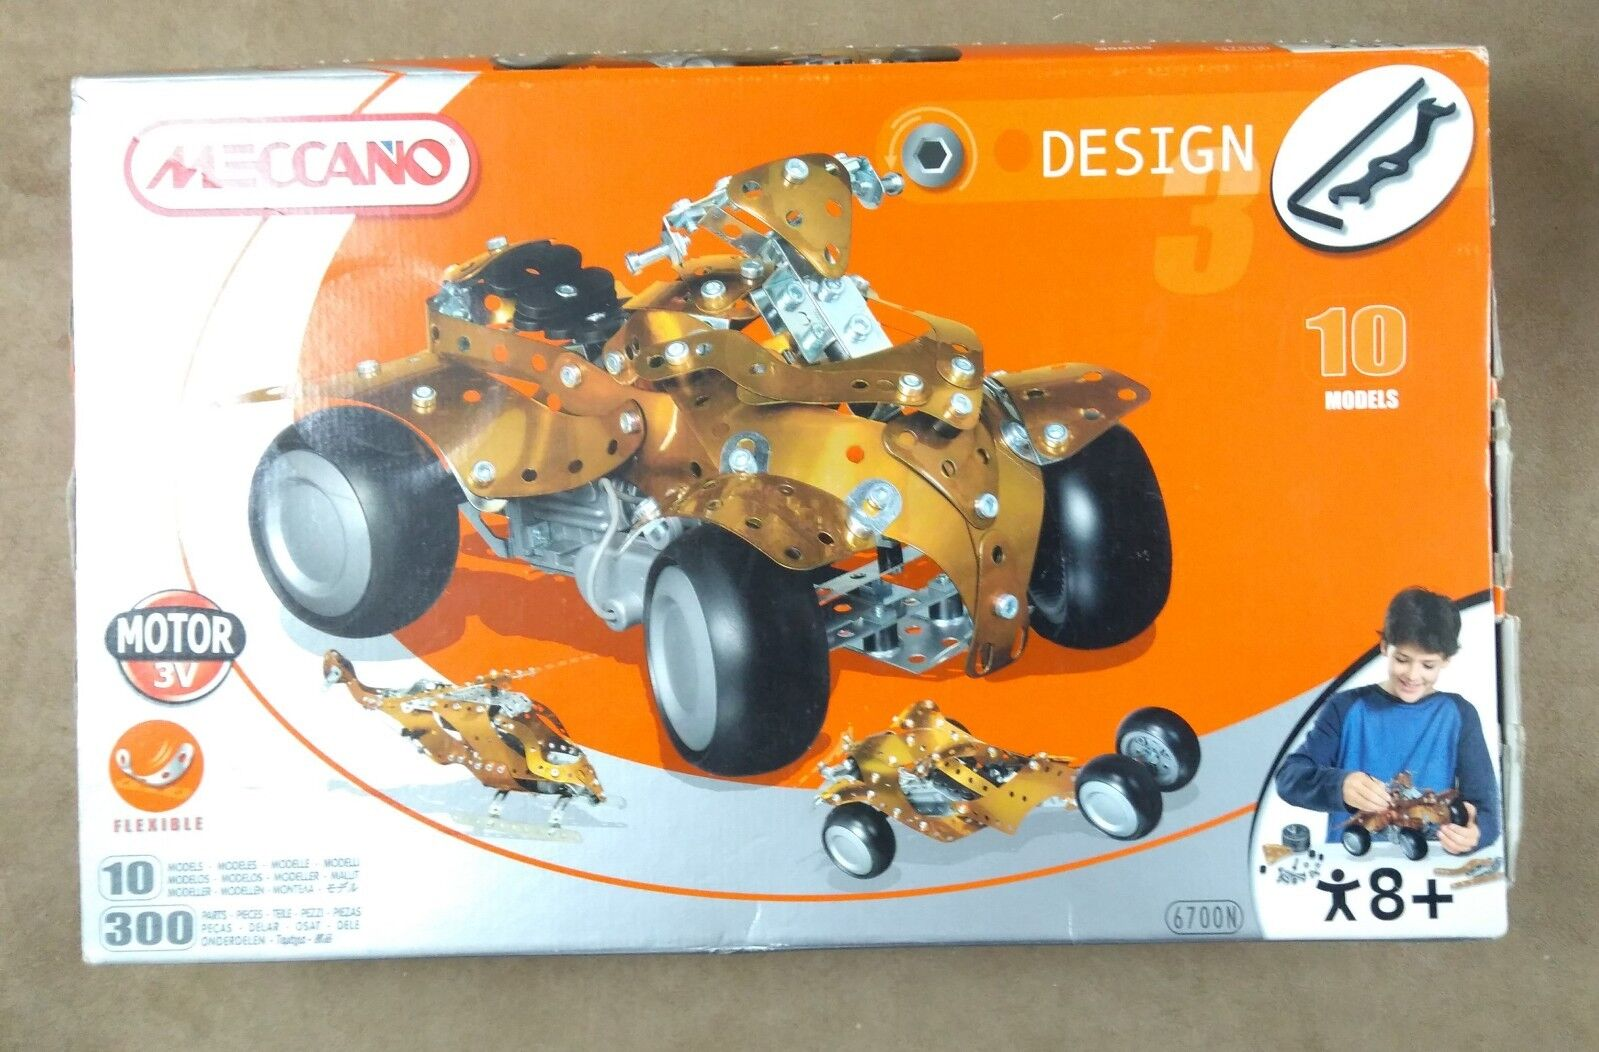 Meccano Design, 10 Models, 6700N, Sealed inside